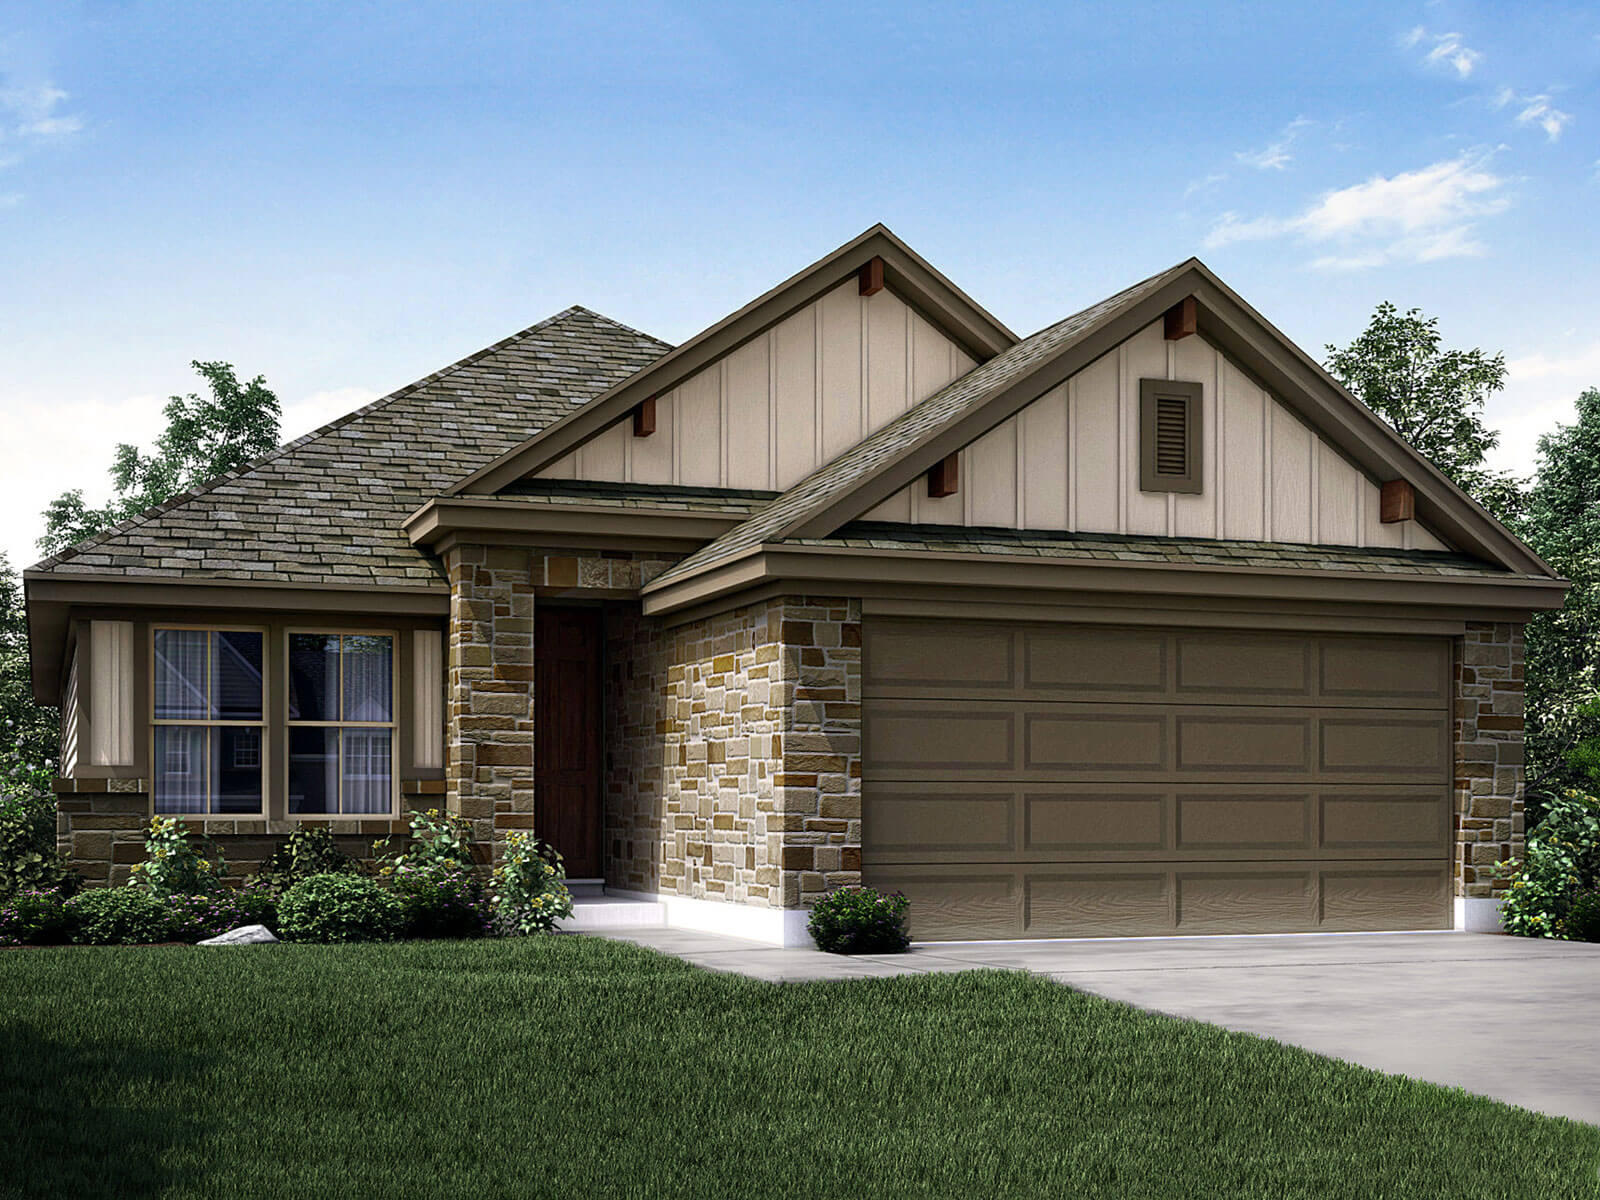 11741 Troubadour Trl, San Antonio, TX 78245 | Trulia